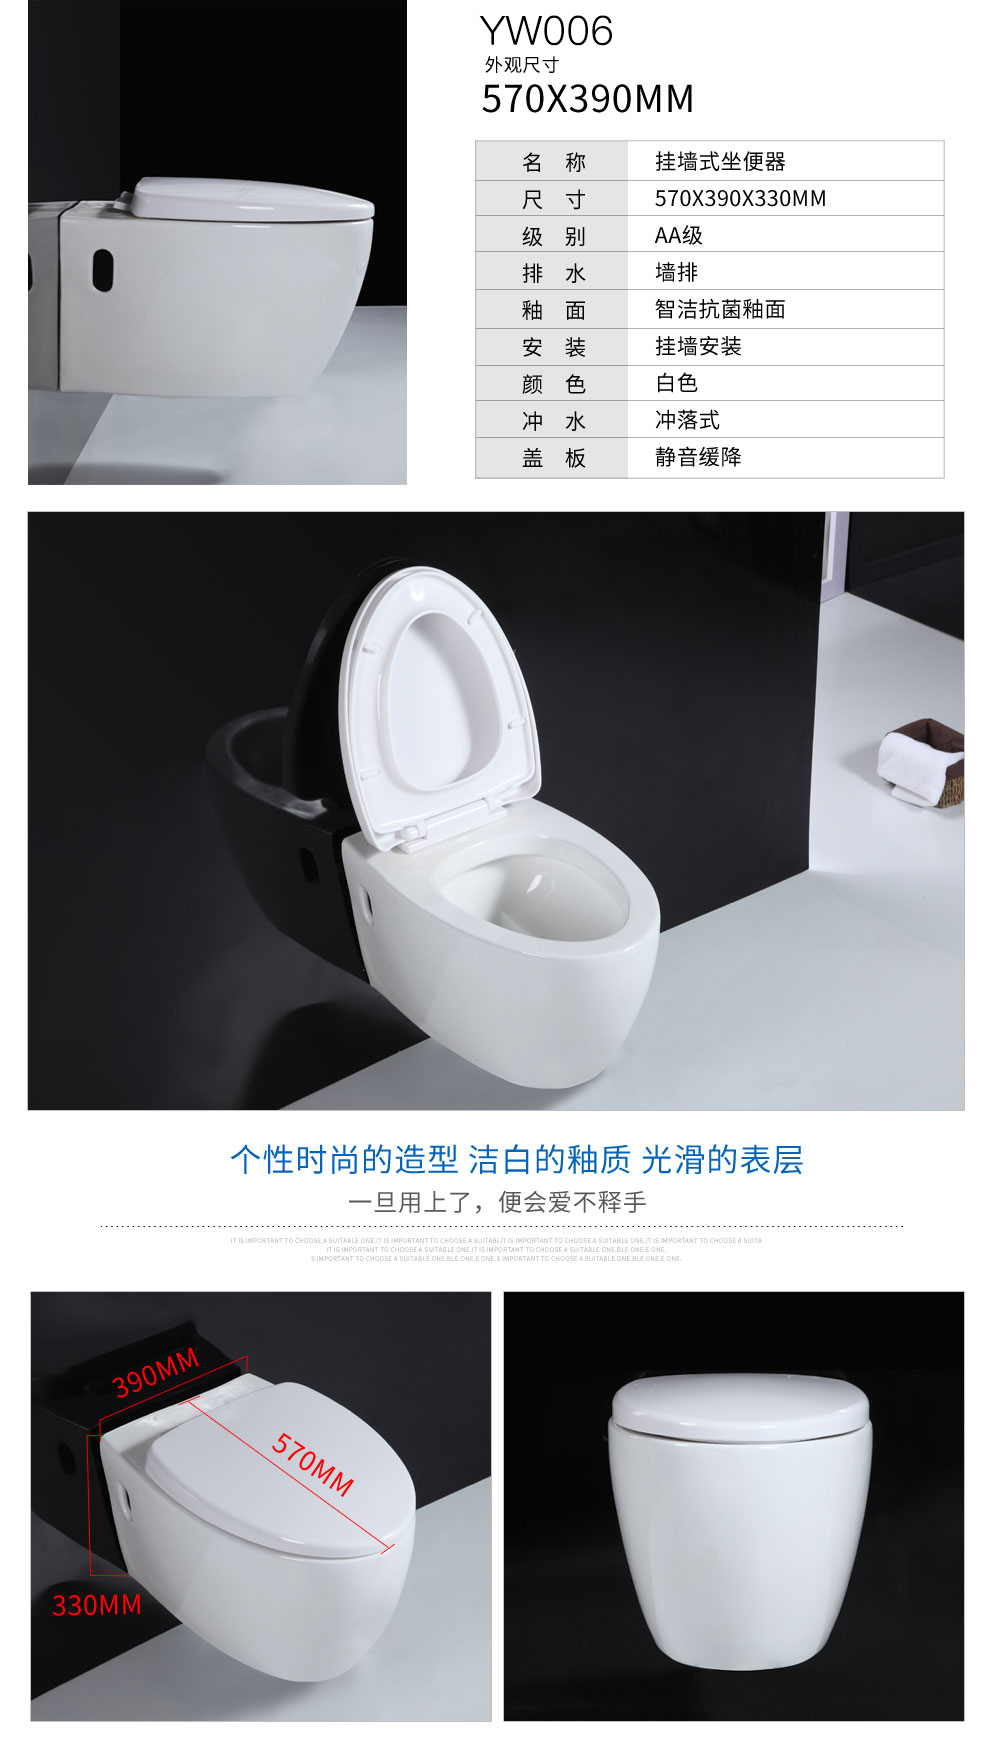 Admirable Yyu Chaozhou A Grade Ceramic Material Bathroom Toilet Wall Hung Wc Water Closet With Slow Down Toilet Seat Cover Buy Chaozhou Ceramic A Grade Onthecornerstone Fun Painted Chair Ideas Images Onthecornerstoneorg